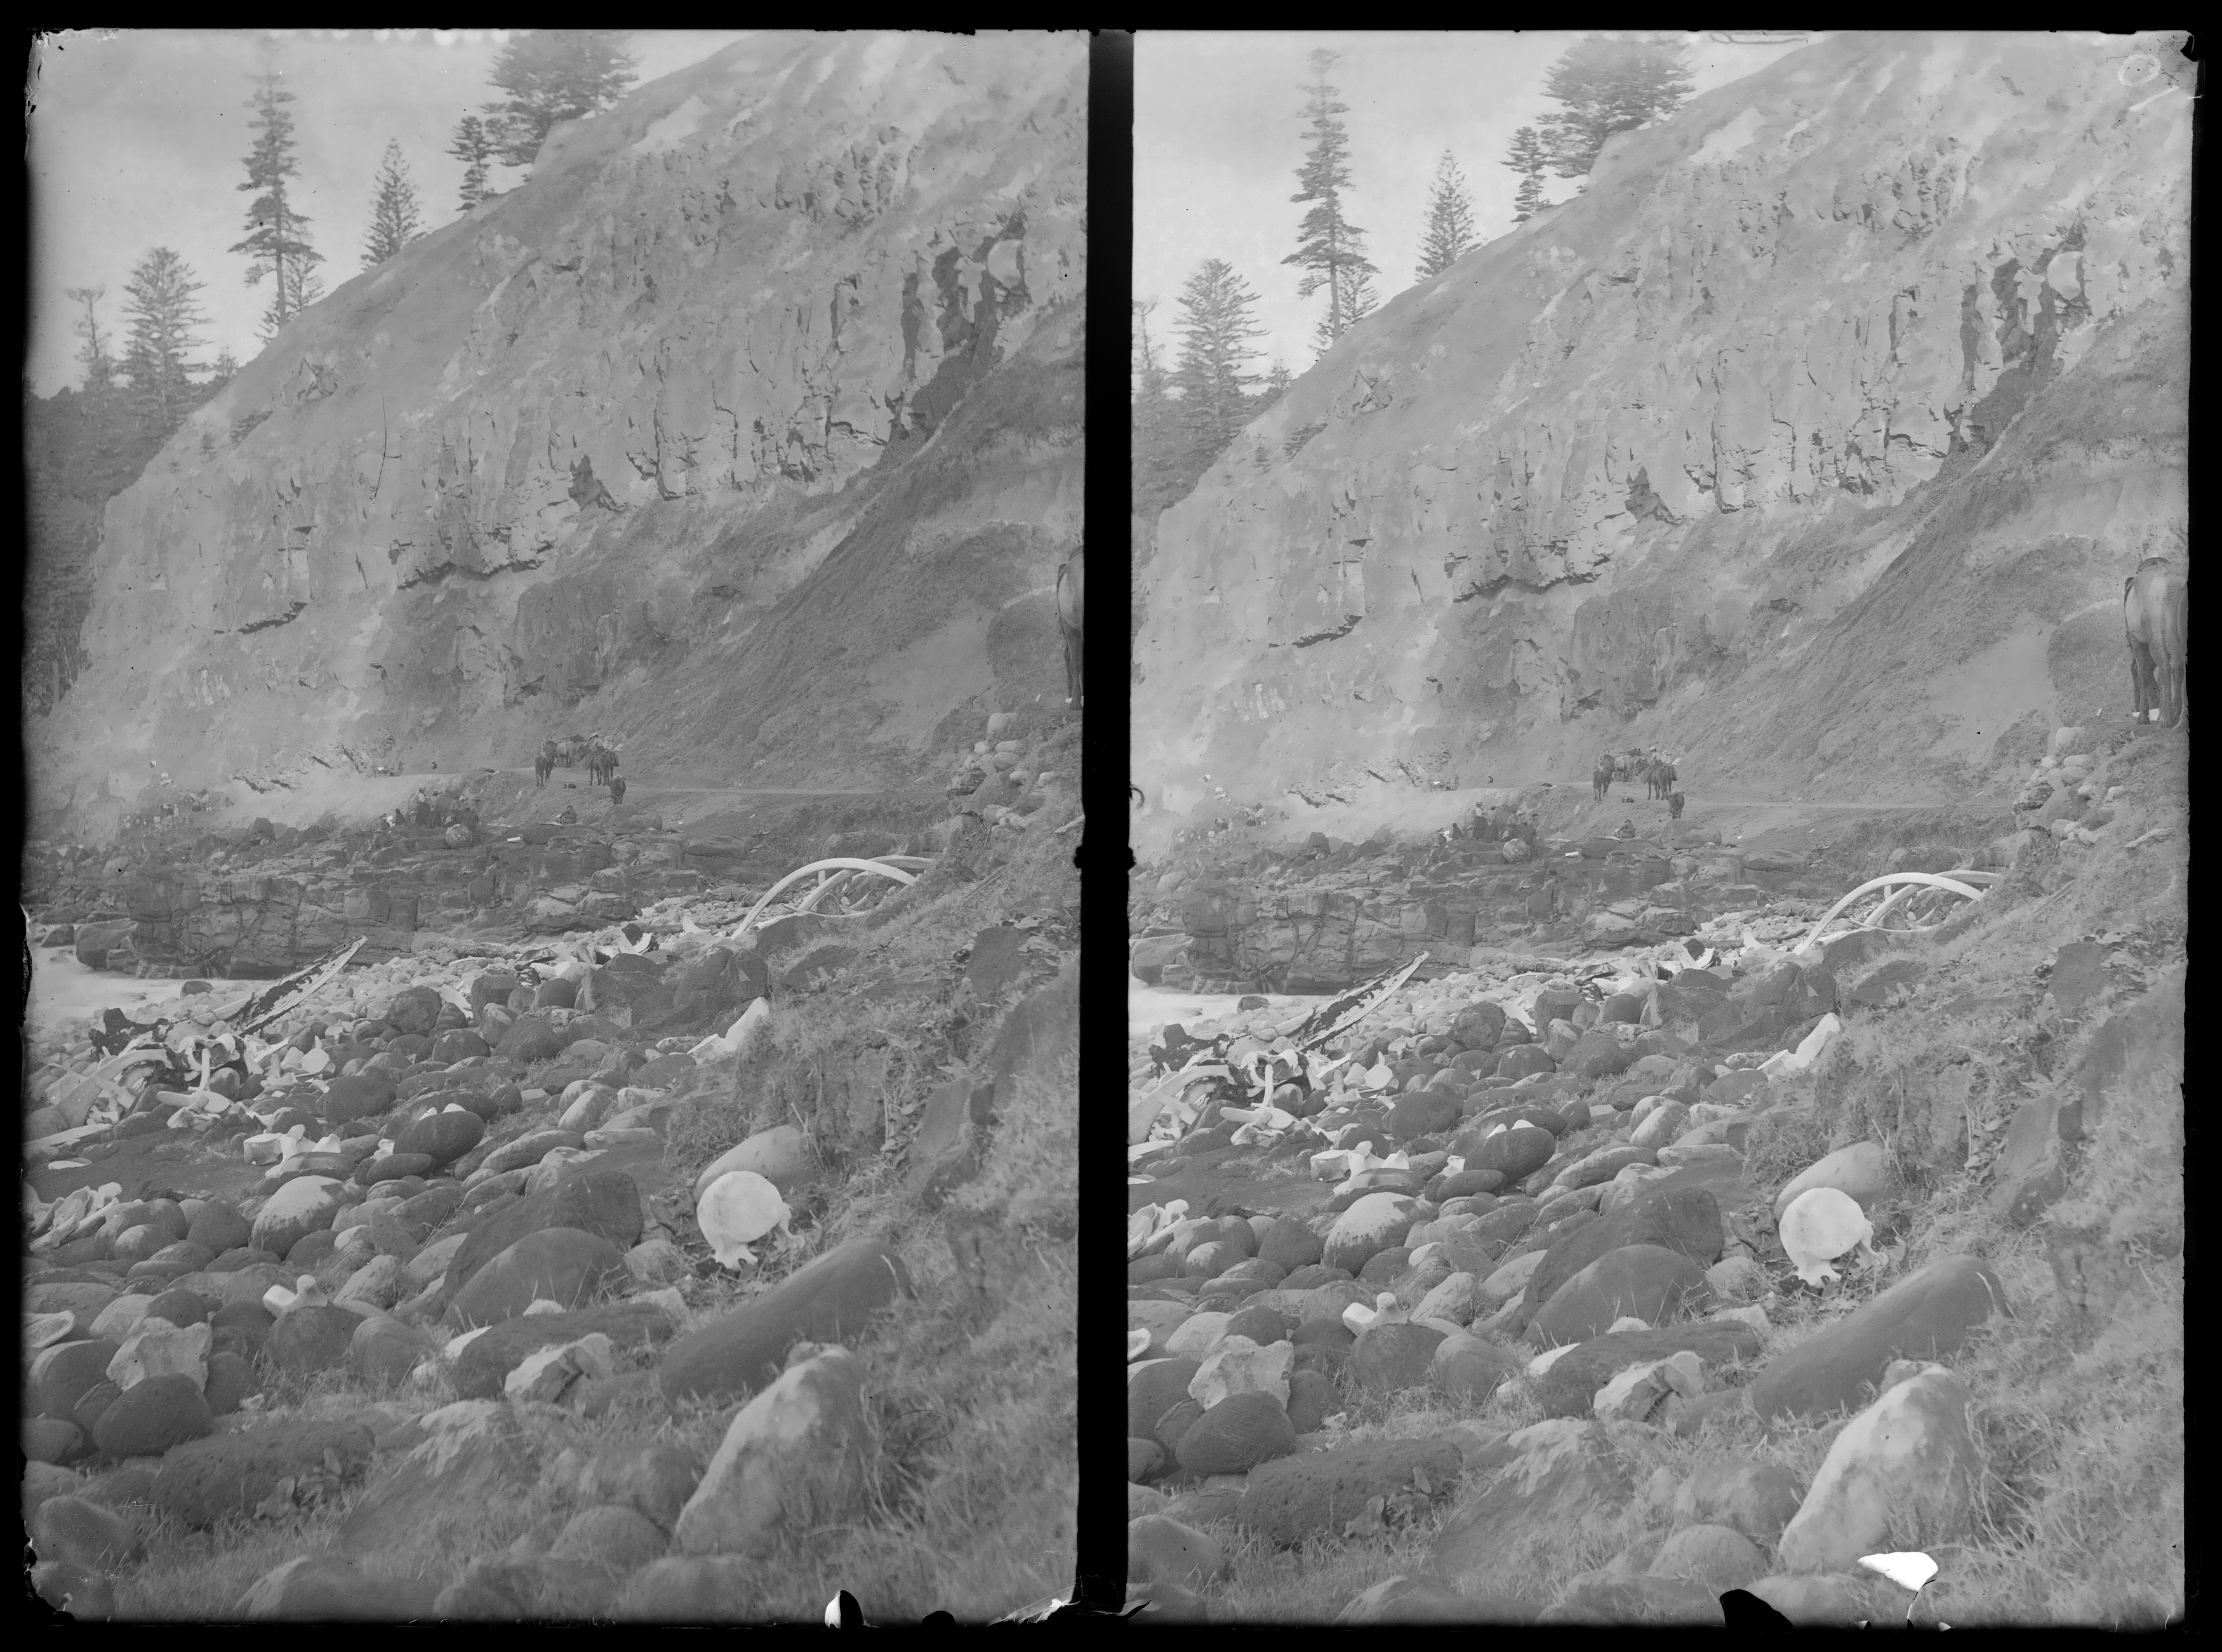 Whale skeleton scattered over rocks at Cascade Bay, Norfolk Island, c 1905, glass-plate stereograph, Macpherson Collection, ON 588/Box 12/11